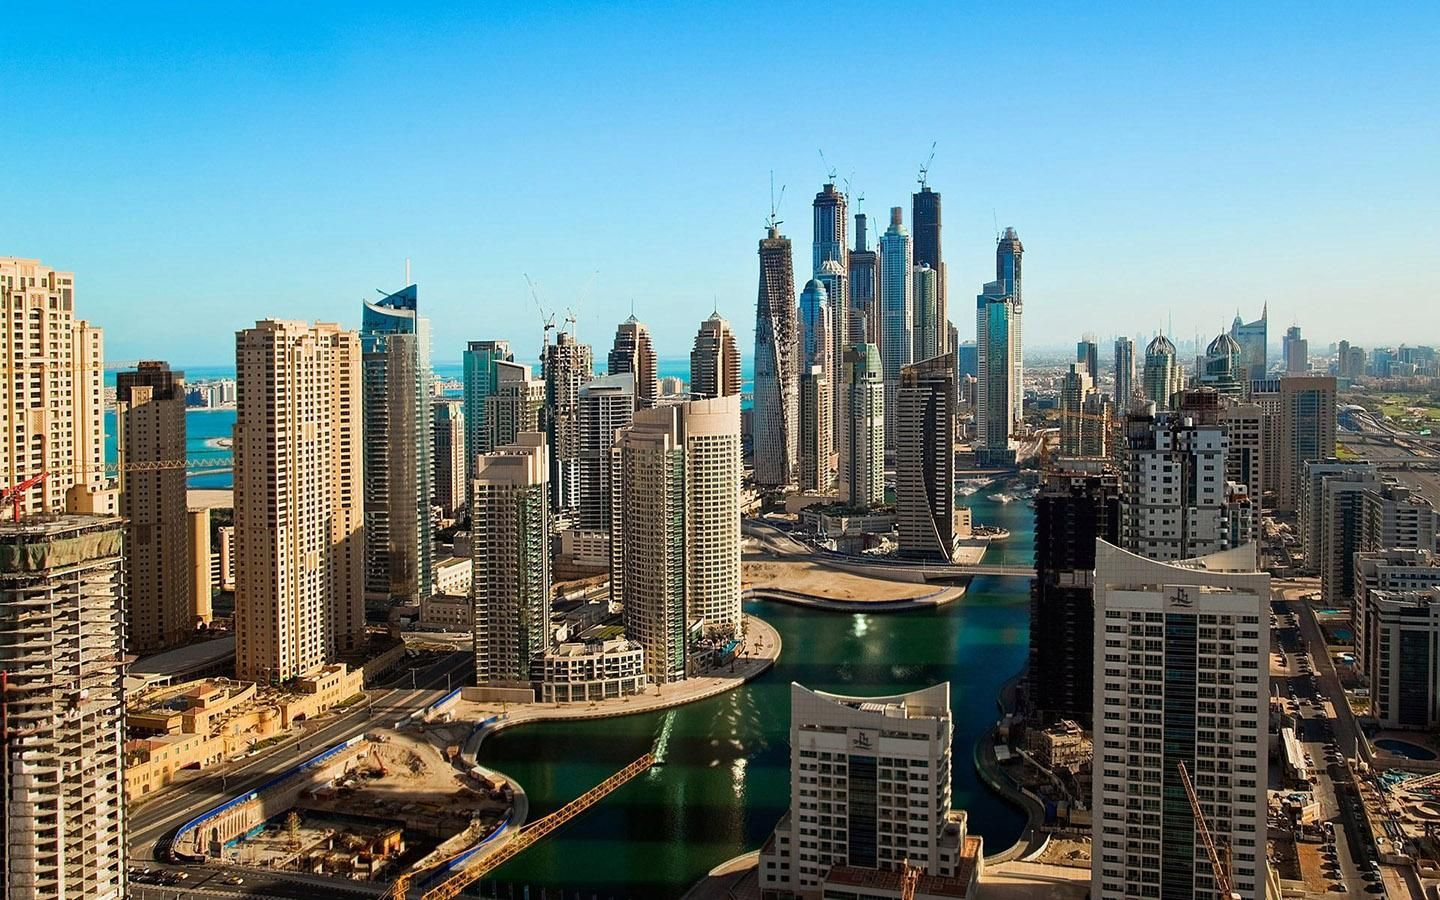 Search and findluxuryreal estatelistings in Dubai at Own A Space website. We have complete listings for luxuryProperties inDubai  #investment #dubai #property #properties #realestate #dubairealestate #uae #mydubai